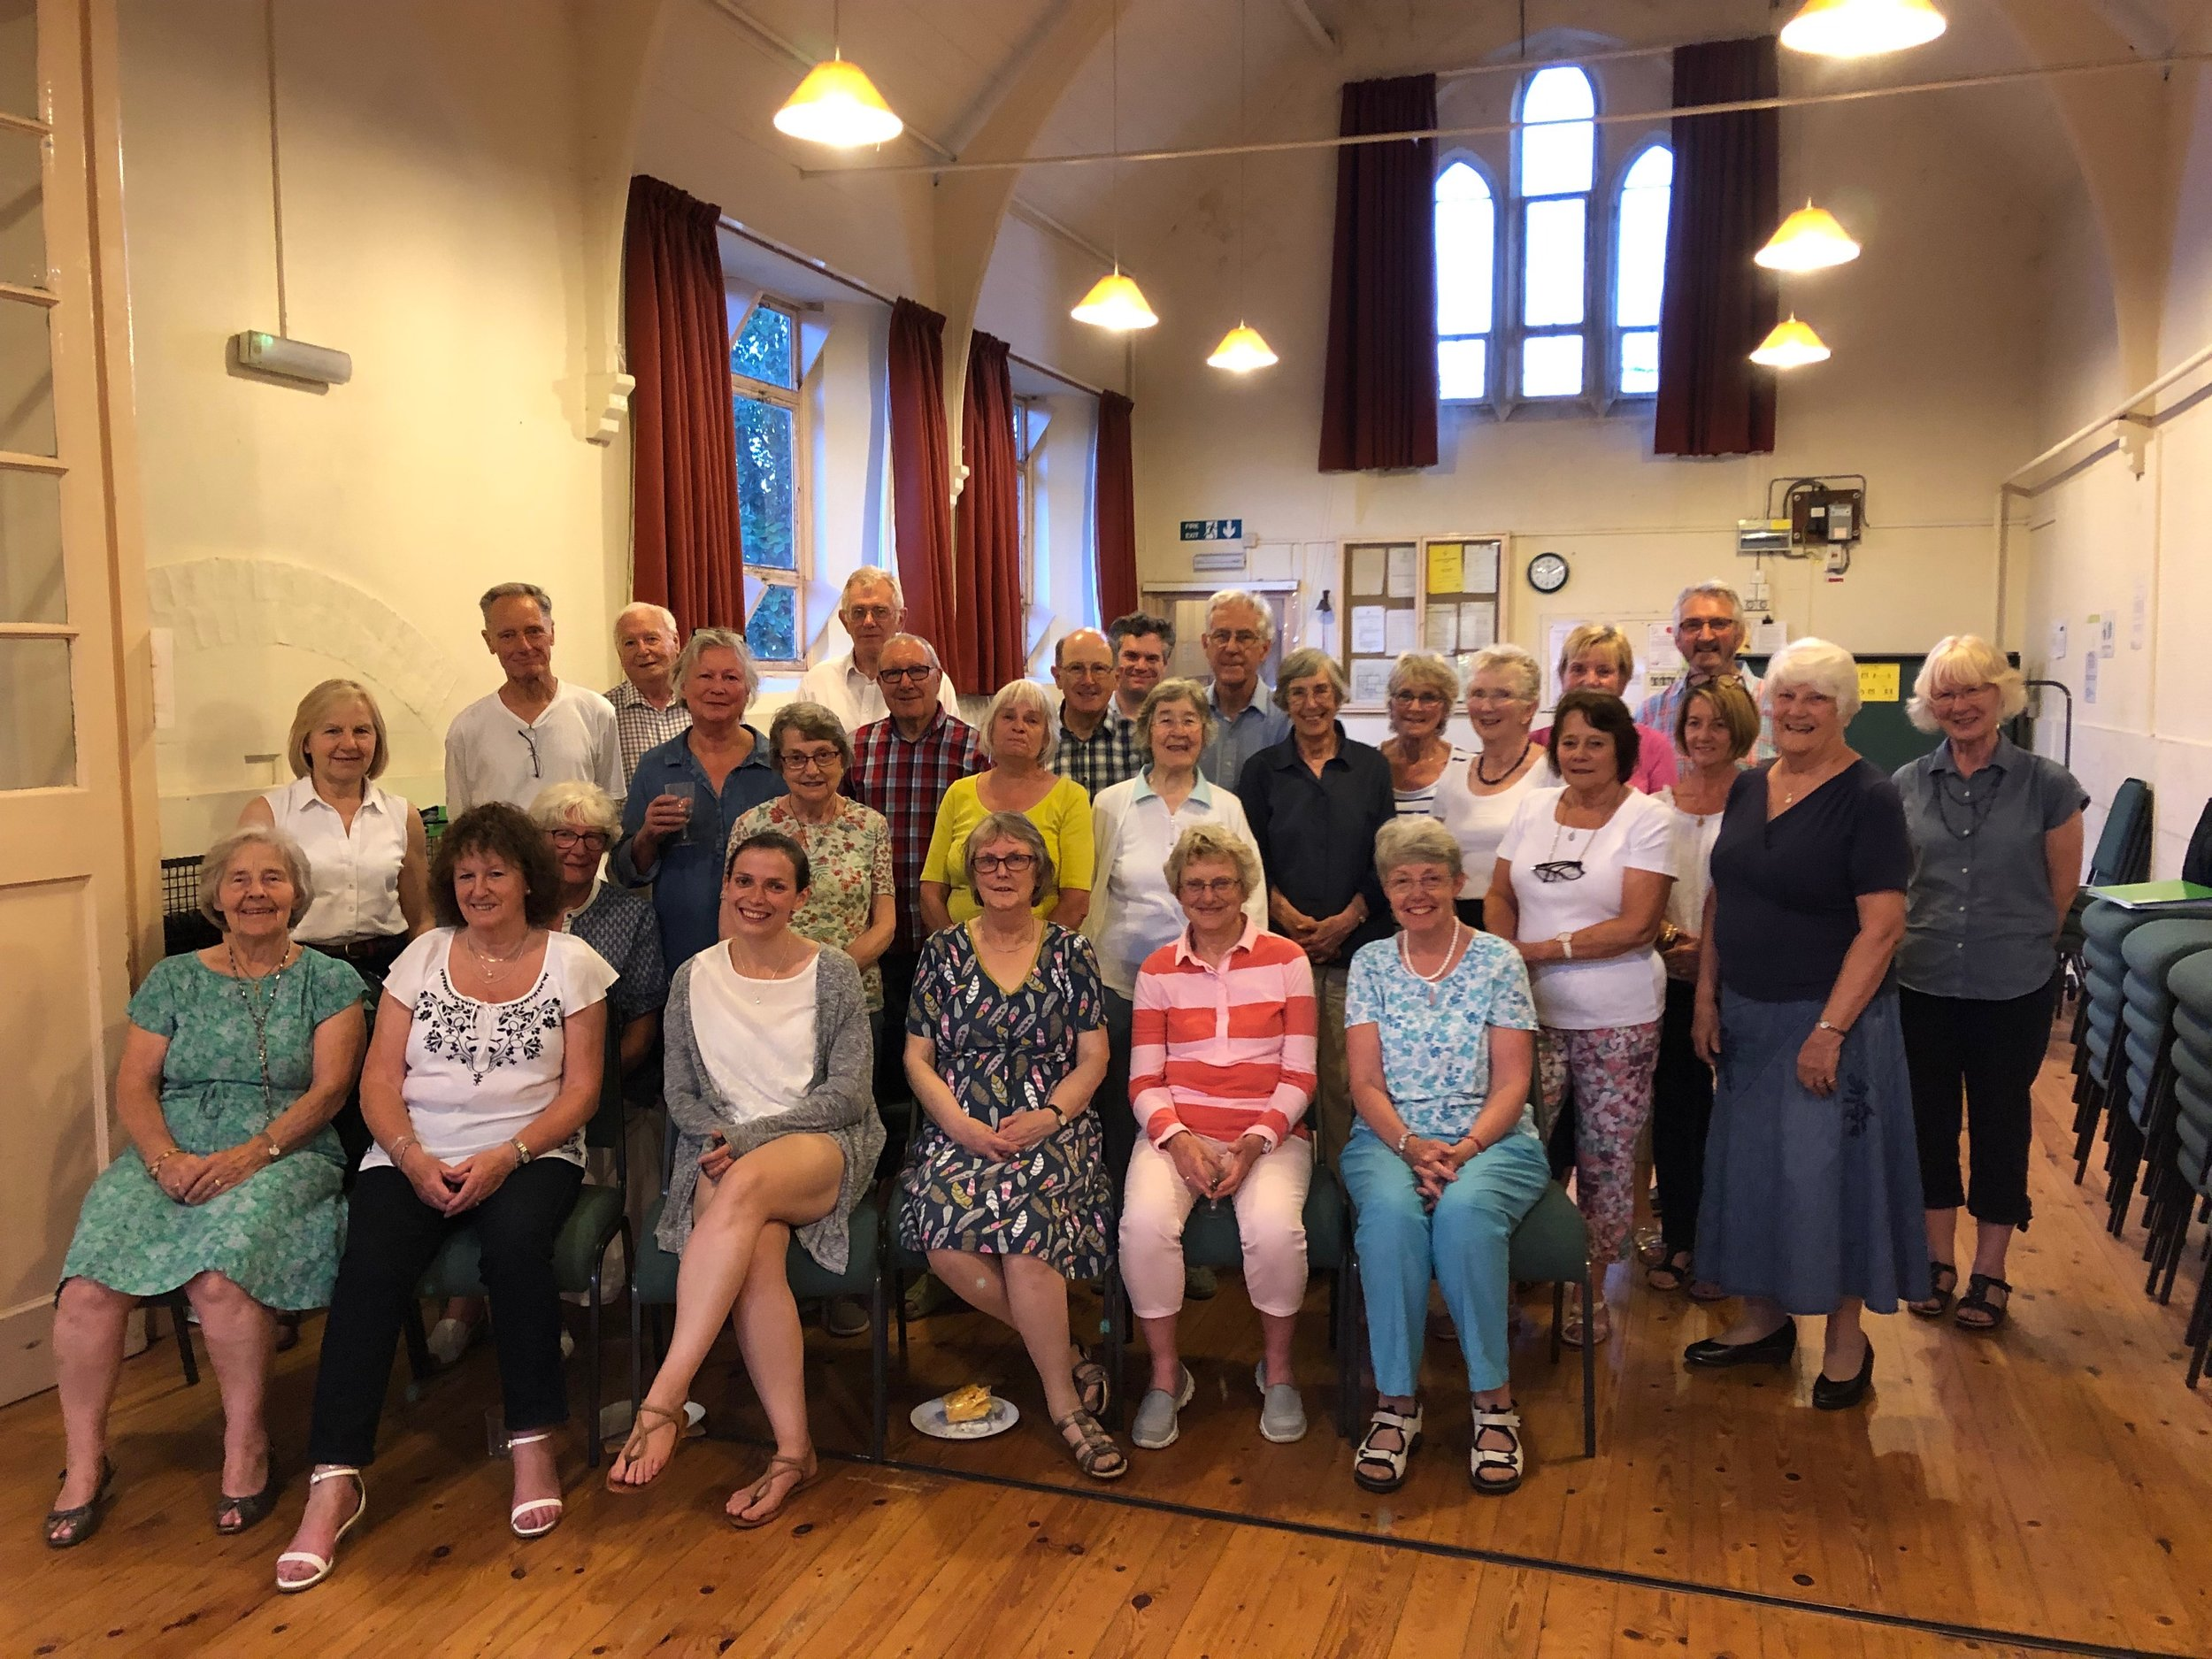 Jessica and the members of Greens Norton Community Choir on their final rehearsal before the Summer break of 2019